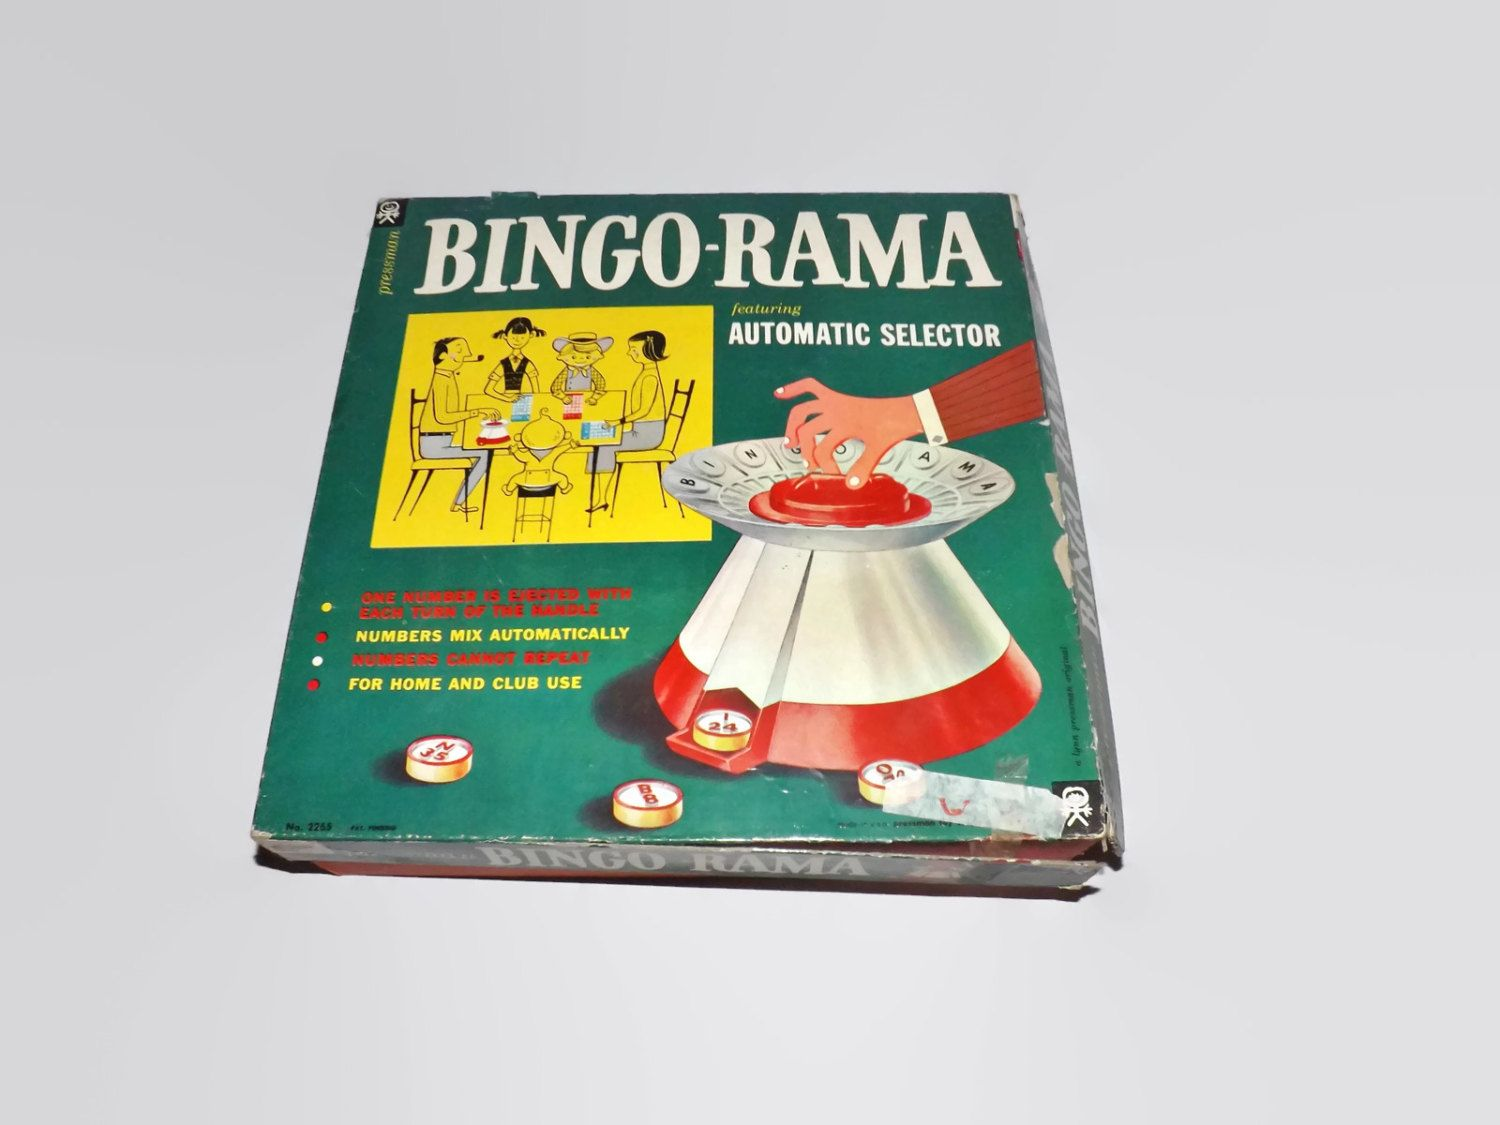 Vintage Bingo - Rama Game, Pressman, Automatic Selector, Multi Player, Numbers, Markers, Five In A Row by JandDsAtticTreasures on Etsy